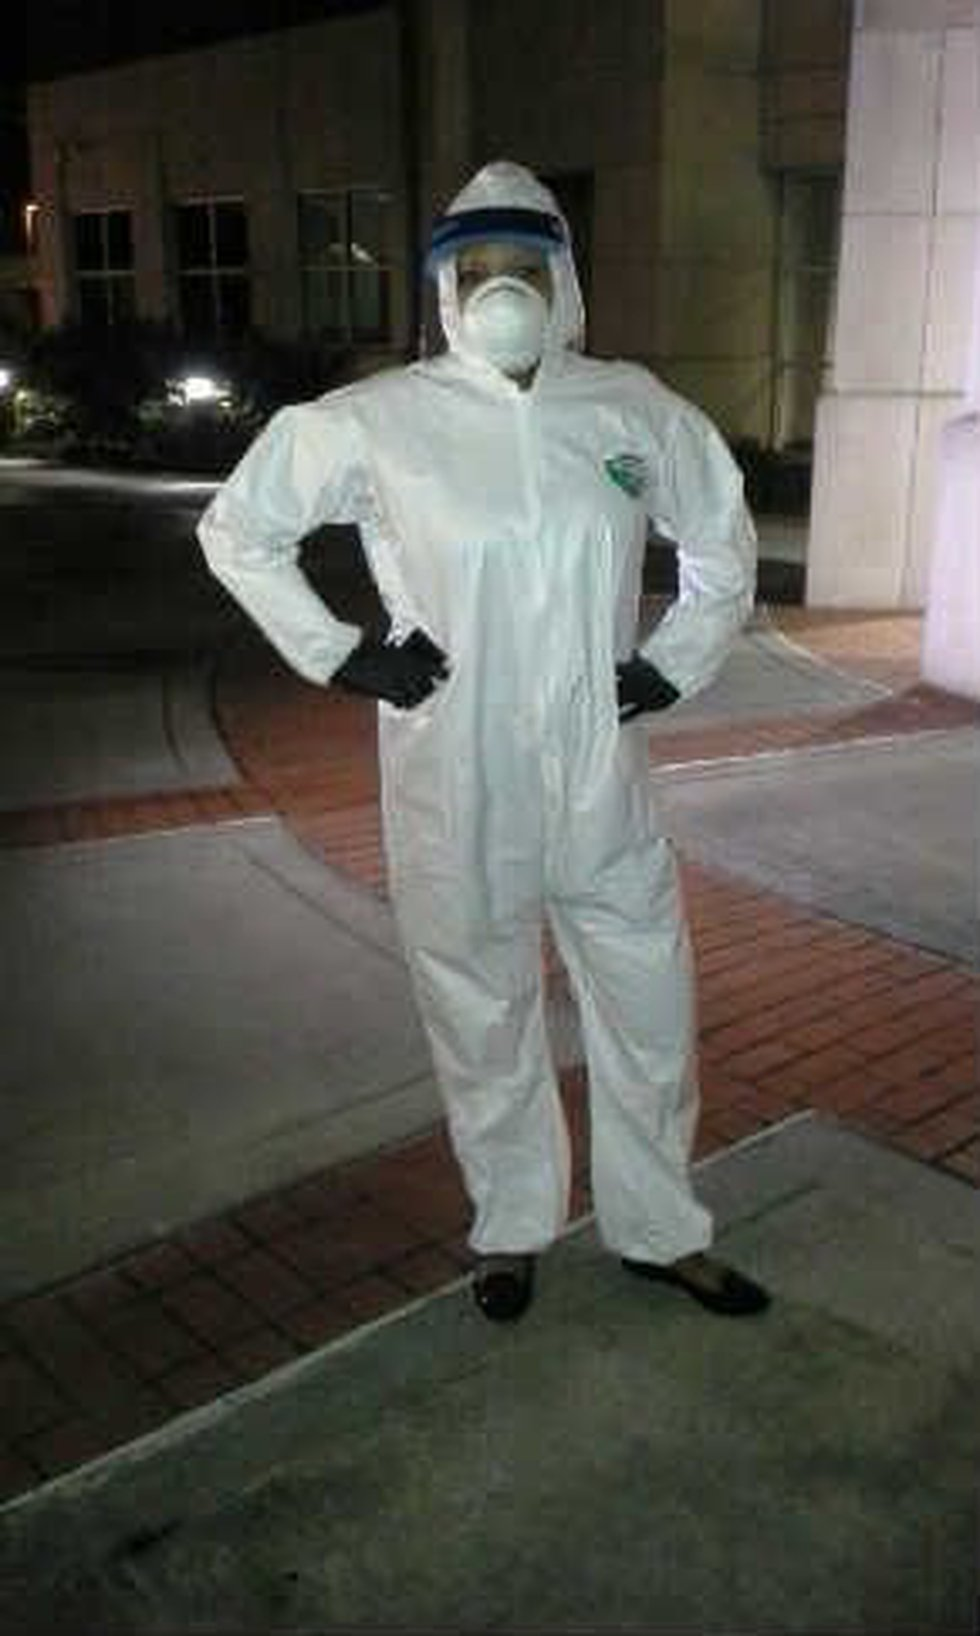 News Leader 9's Jenyne Donaldson was given a firsthand look inside CPD's Ebola training.